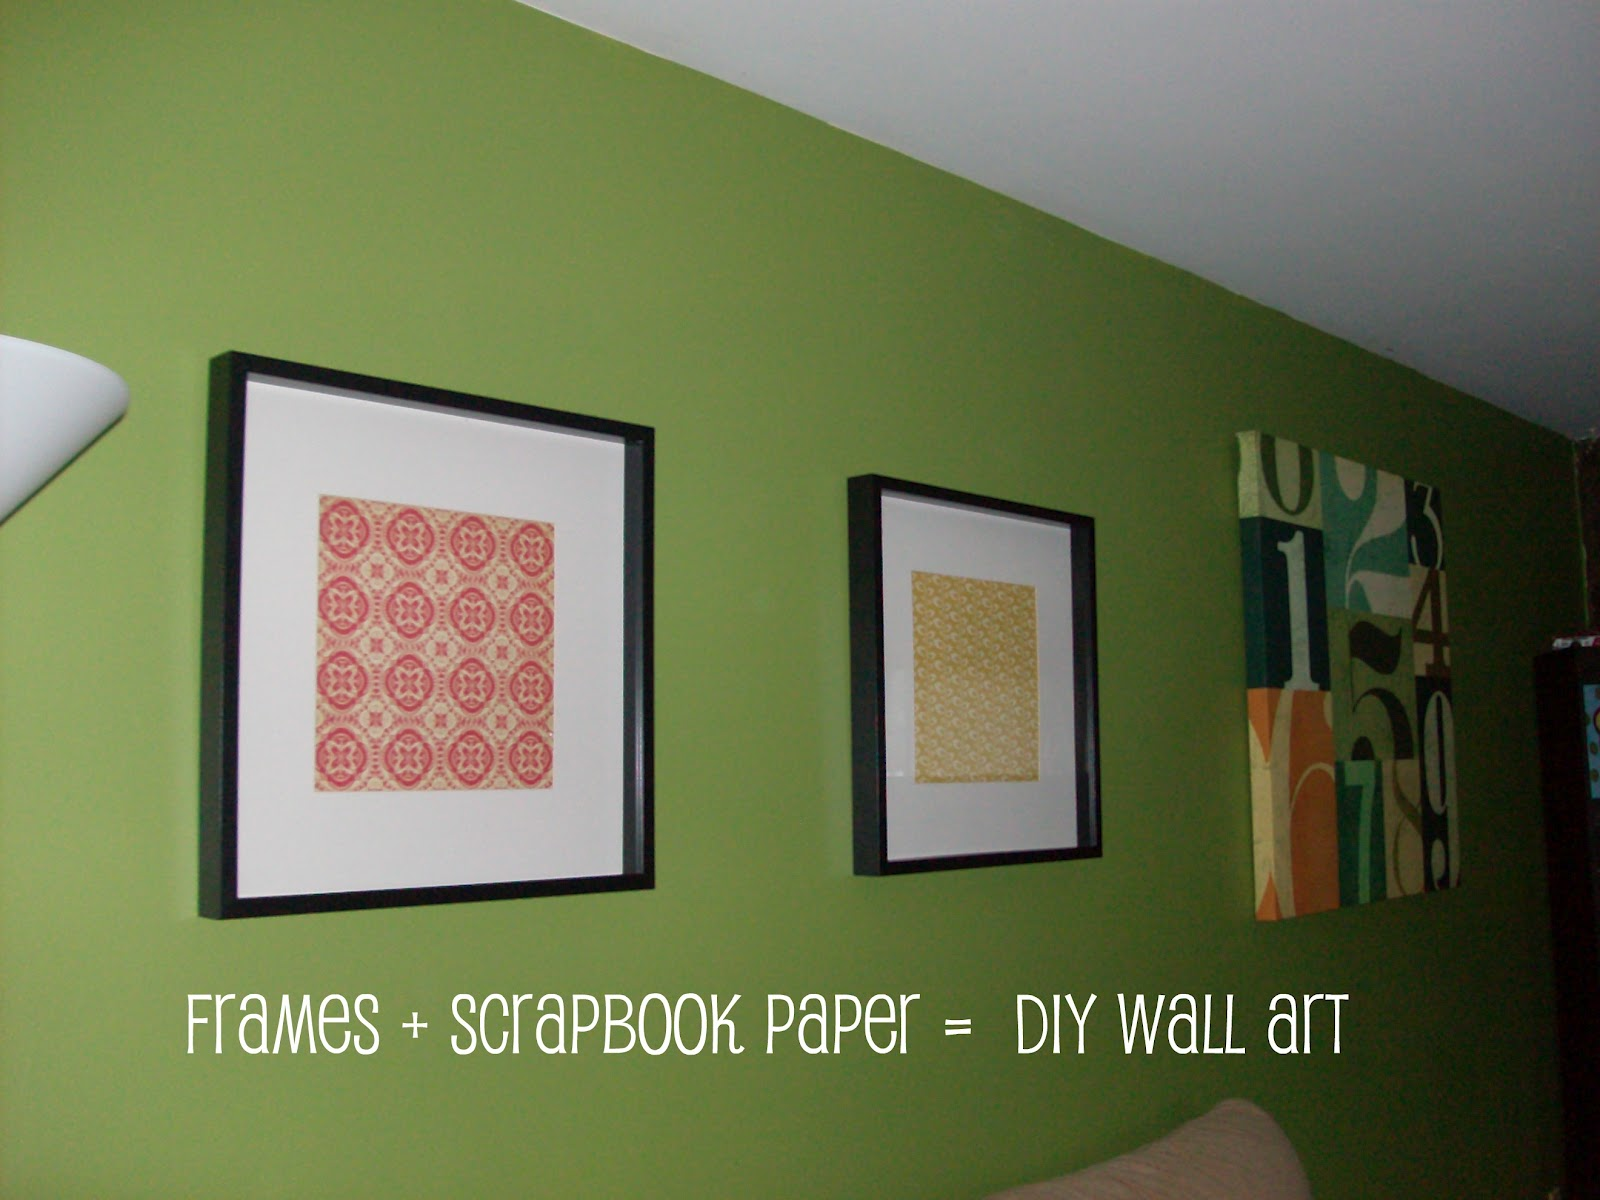 Diy Wall Art With Scrapbook Paper : A dozen years later frames scrapbook paper diy wall art